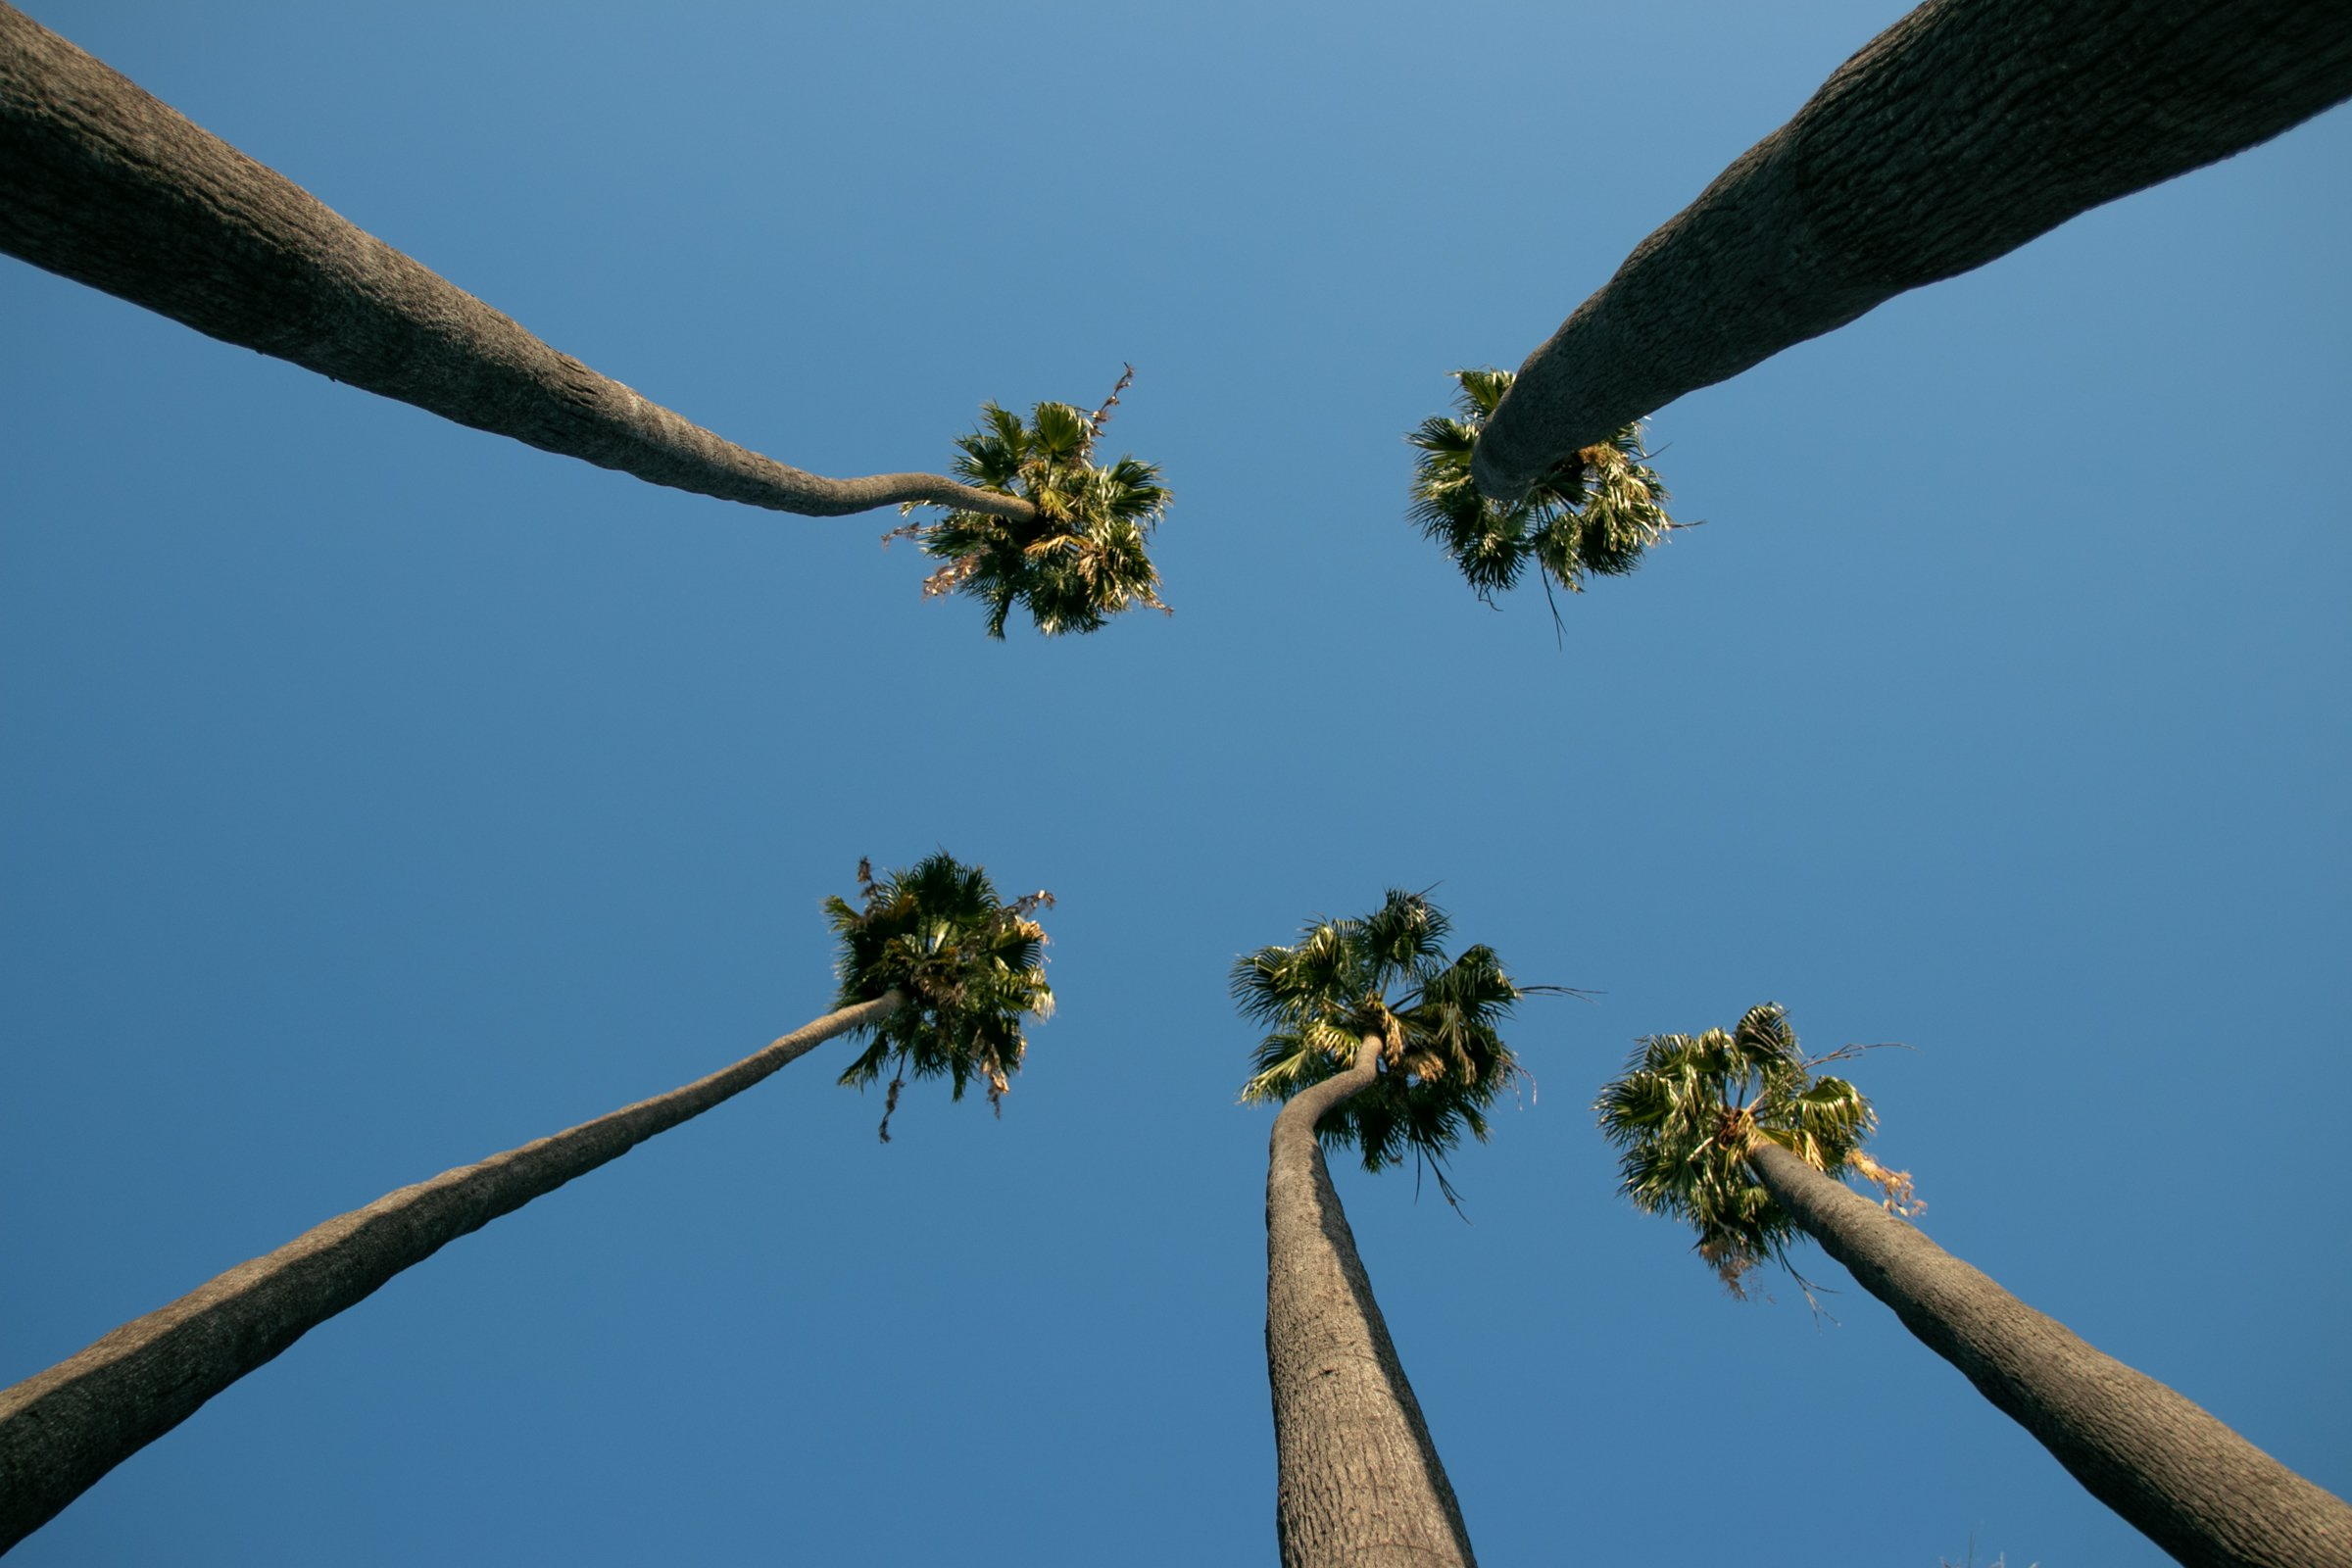 Tall Palm Trees Against Clear Blue Sky